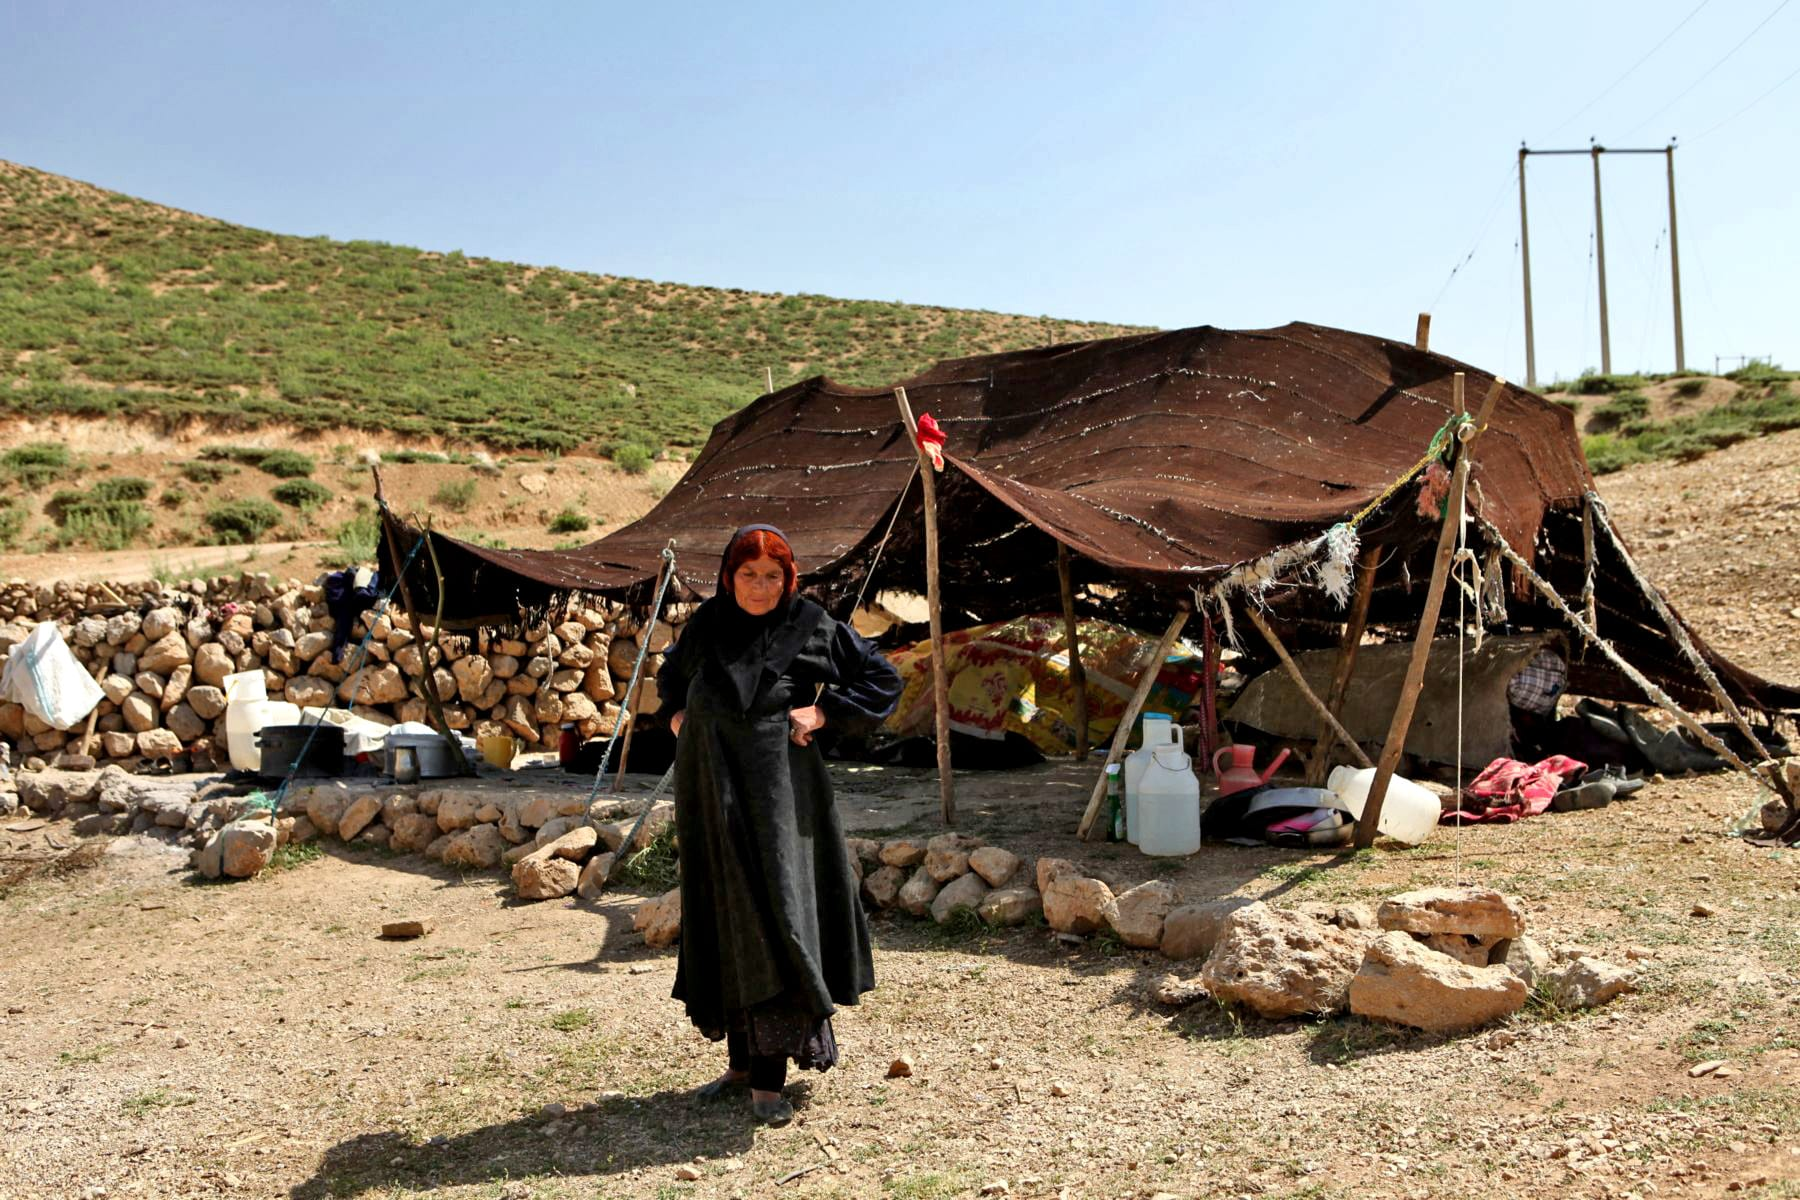 Iran Nomads Tour - Living with the Qashqai Tribes - SURFIRAN